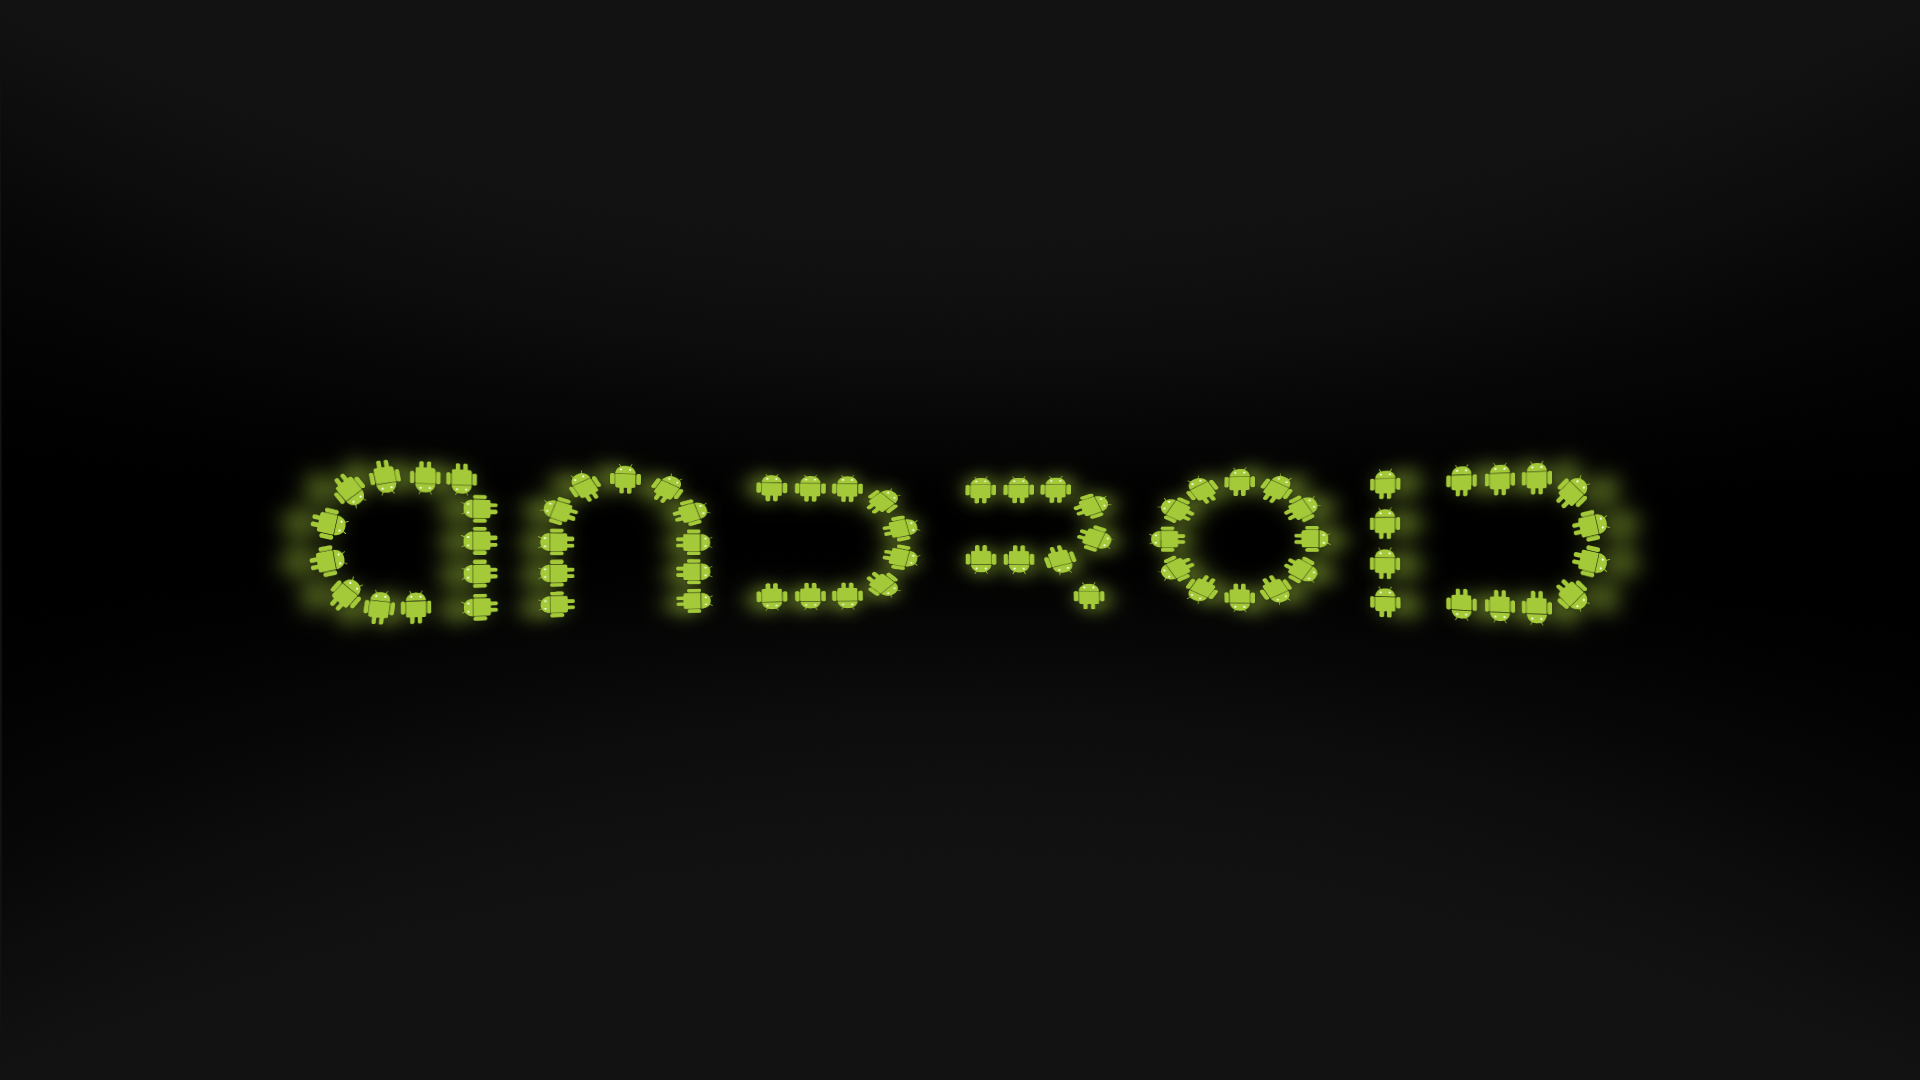 Android in an Android Wallpaper 1920x1080